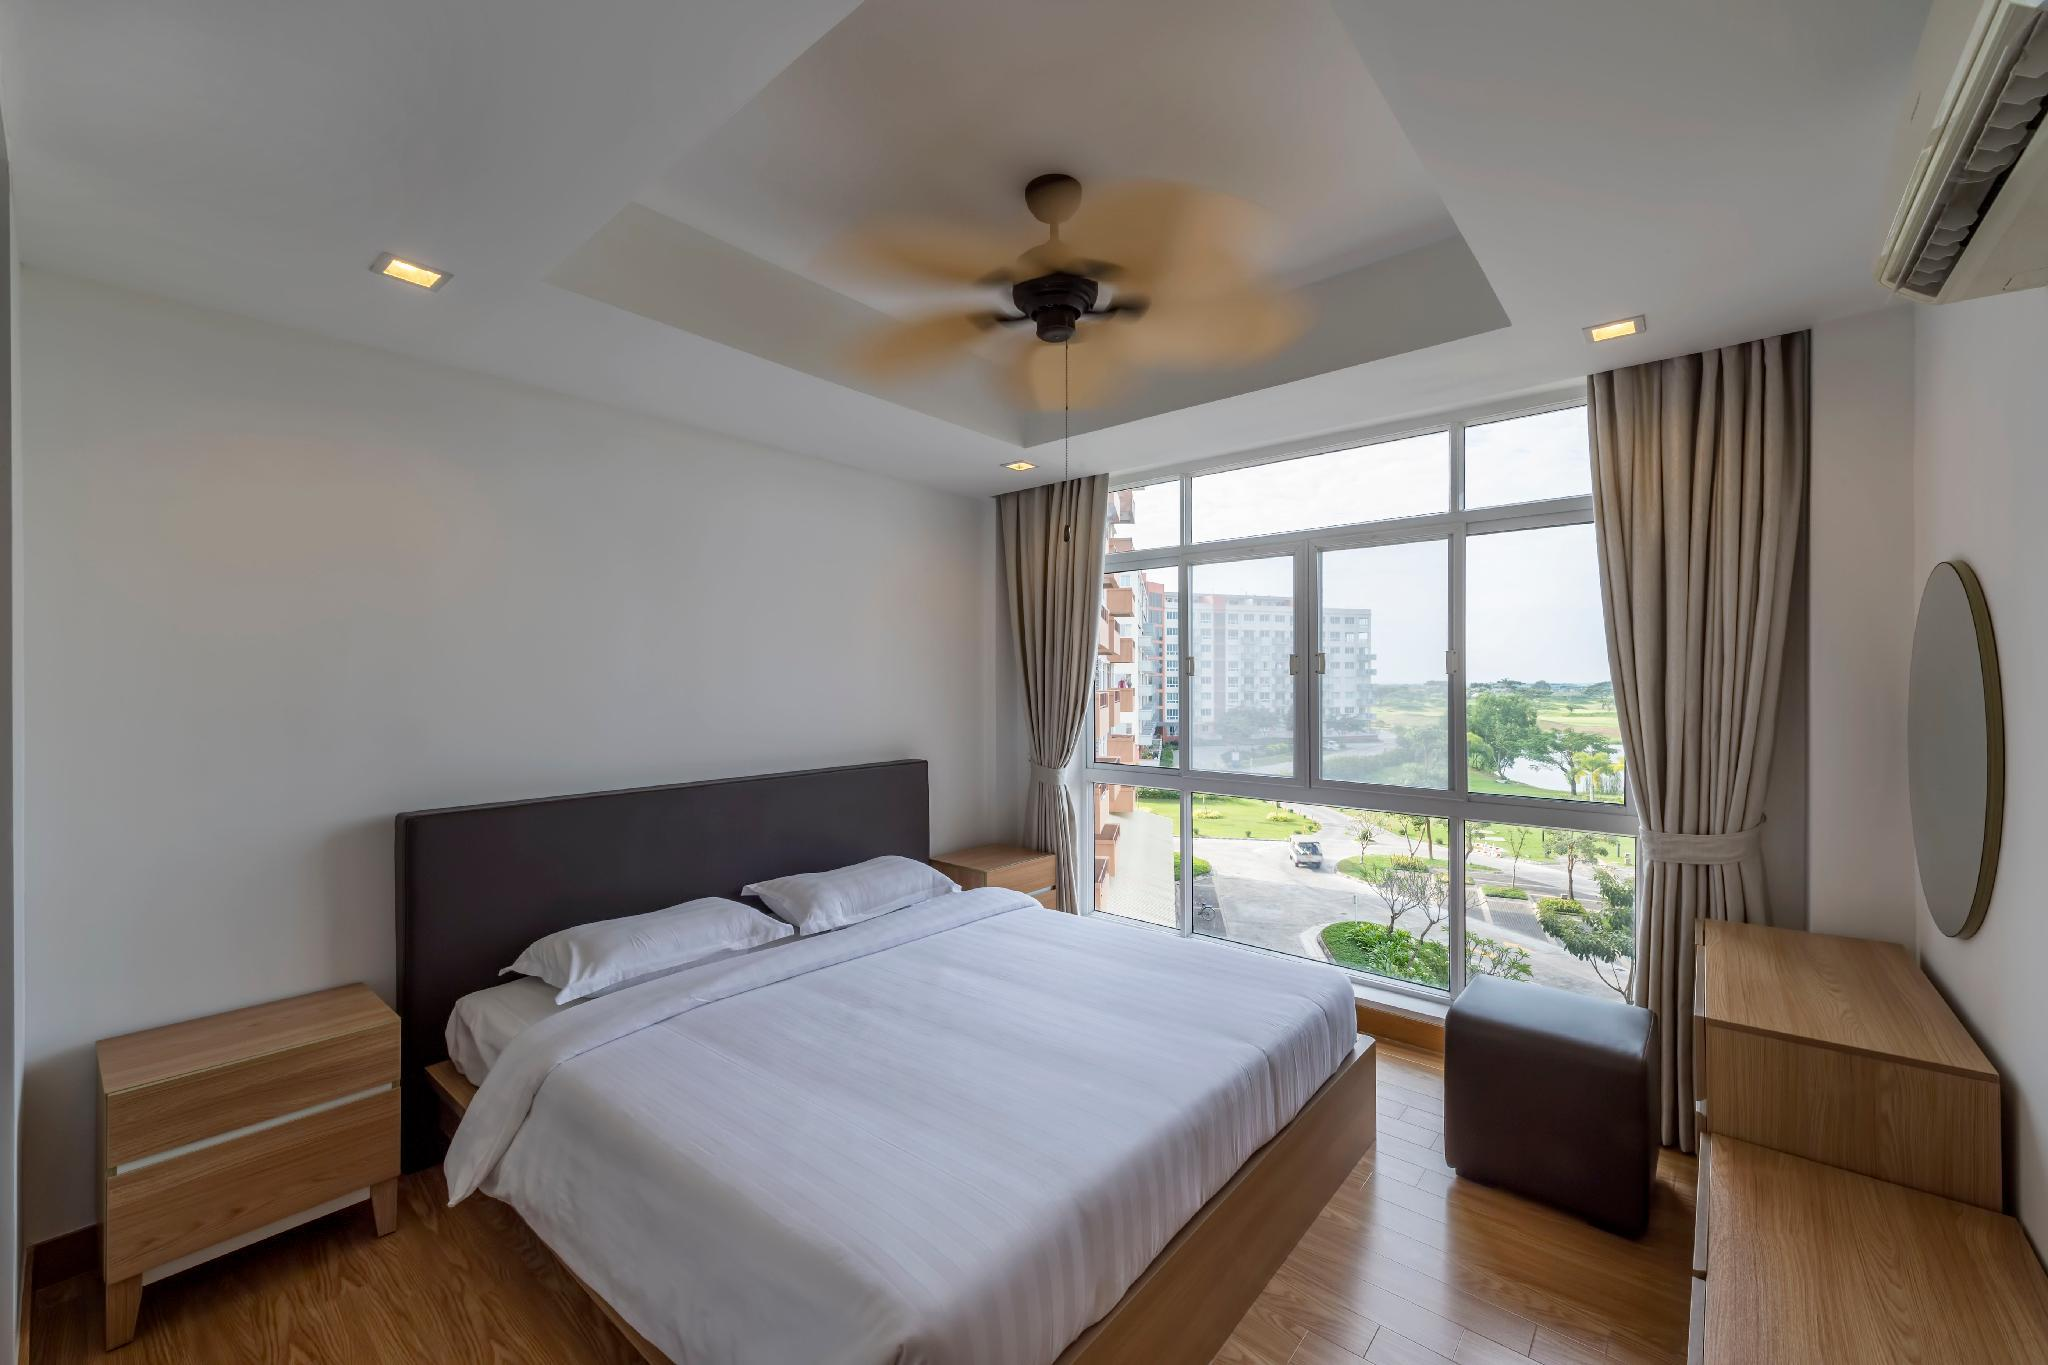 2-Bedroom River View Apartment